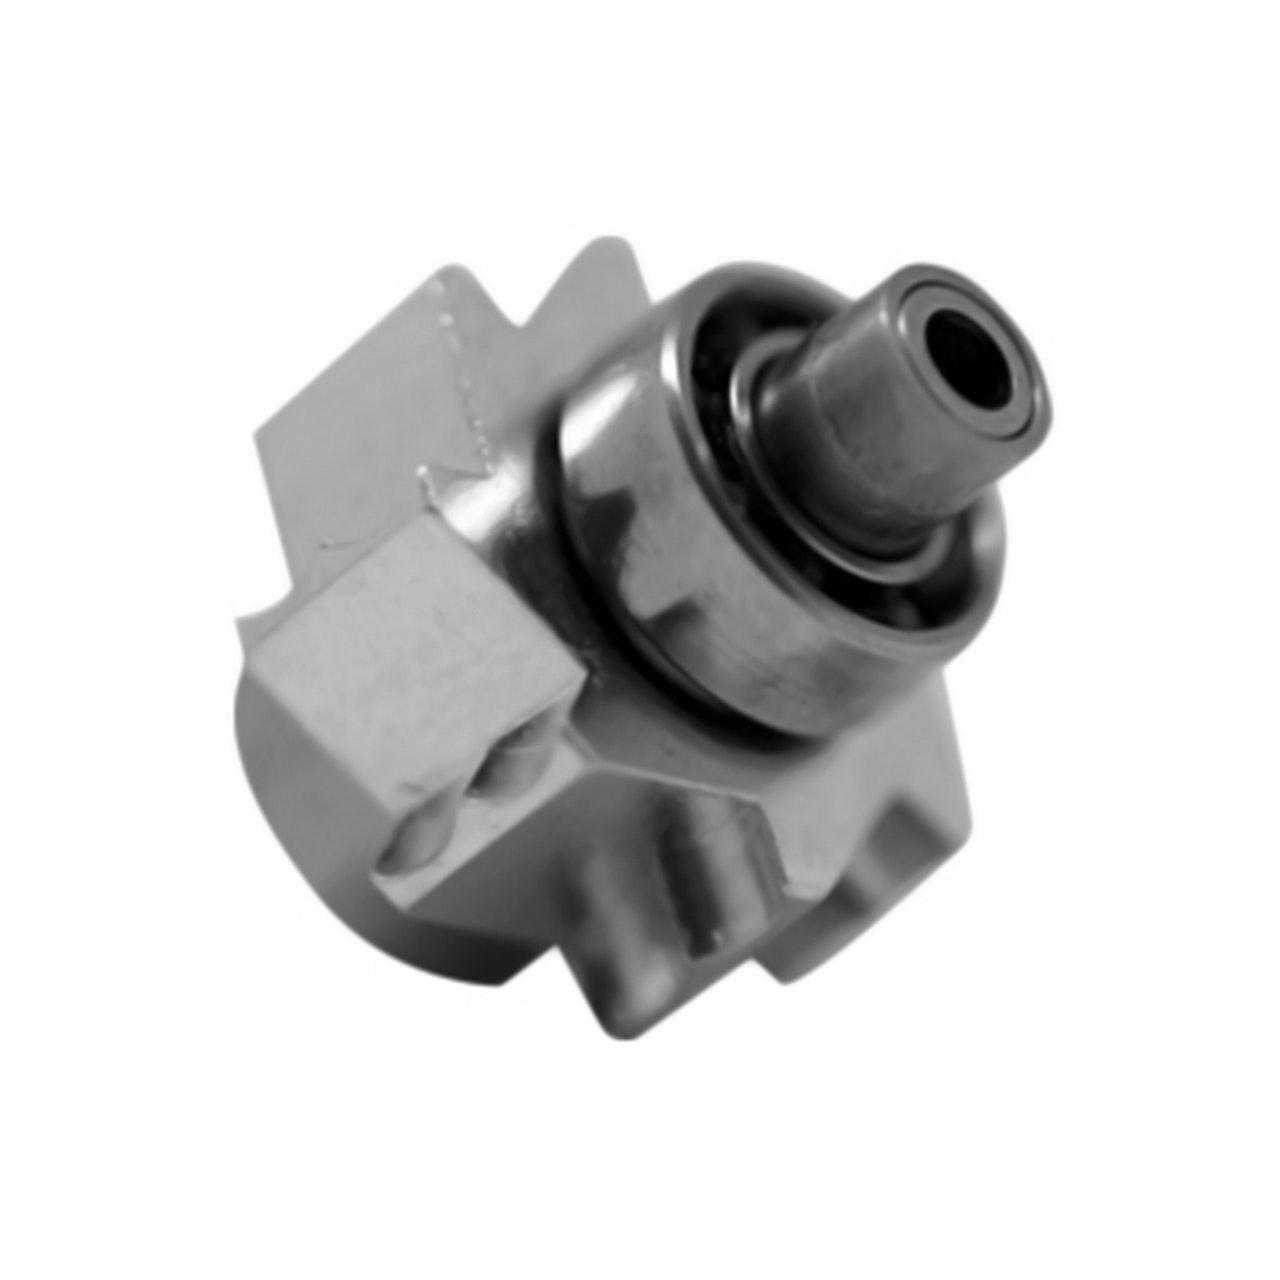 Replacement Ceramic Turbine for Series T High Speed Handpiece - Signature Series - dental supplies